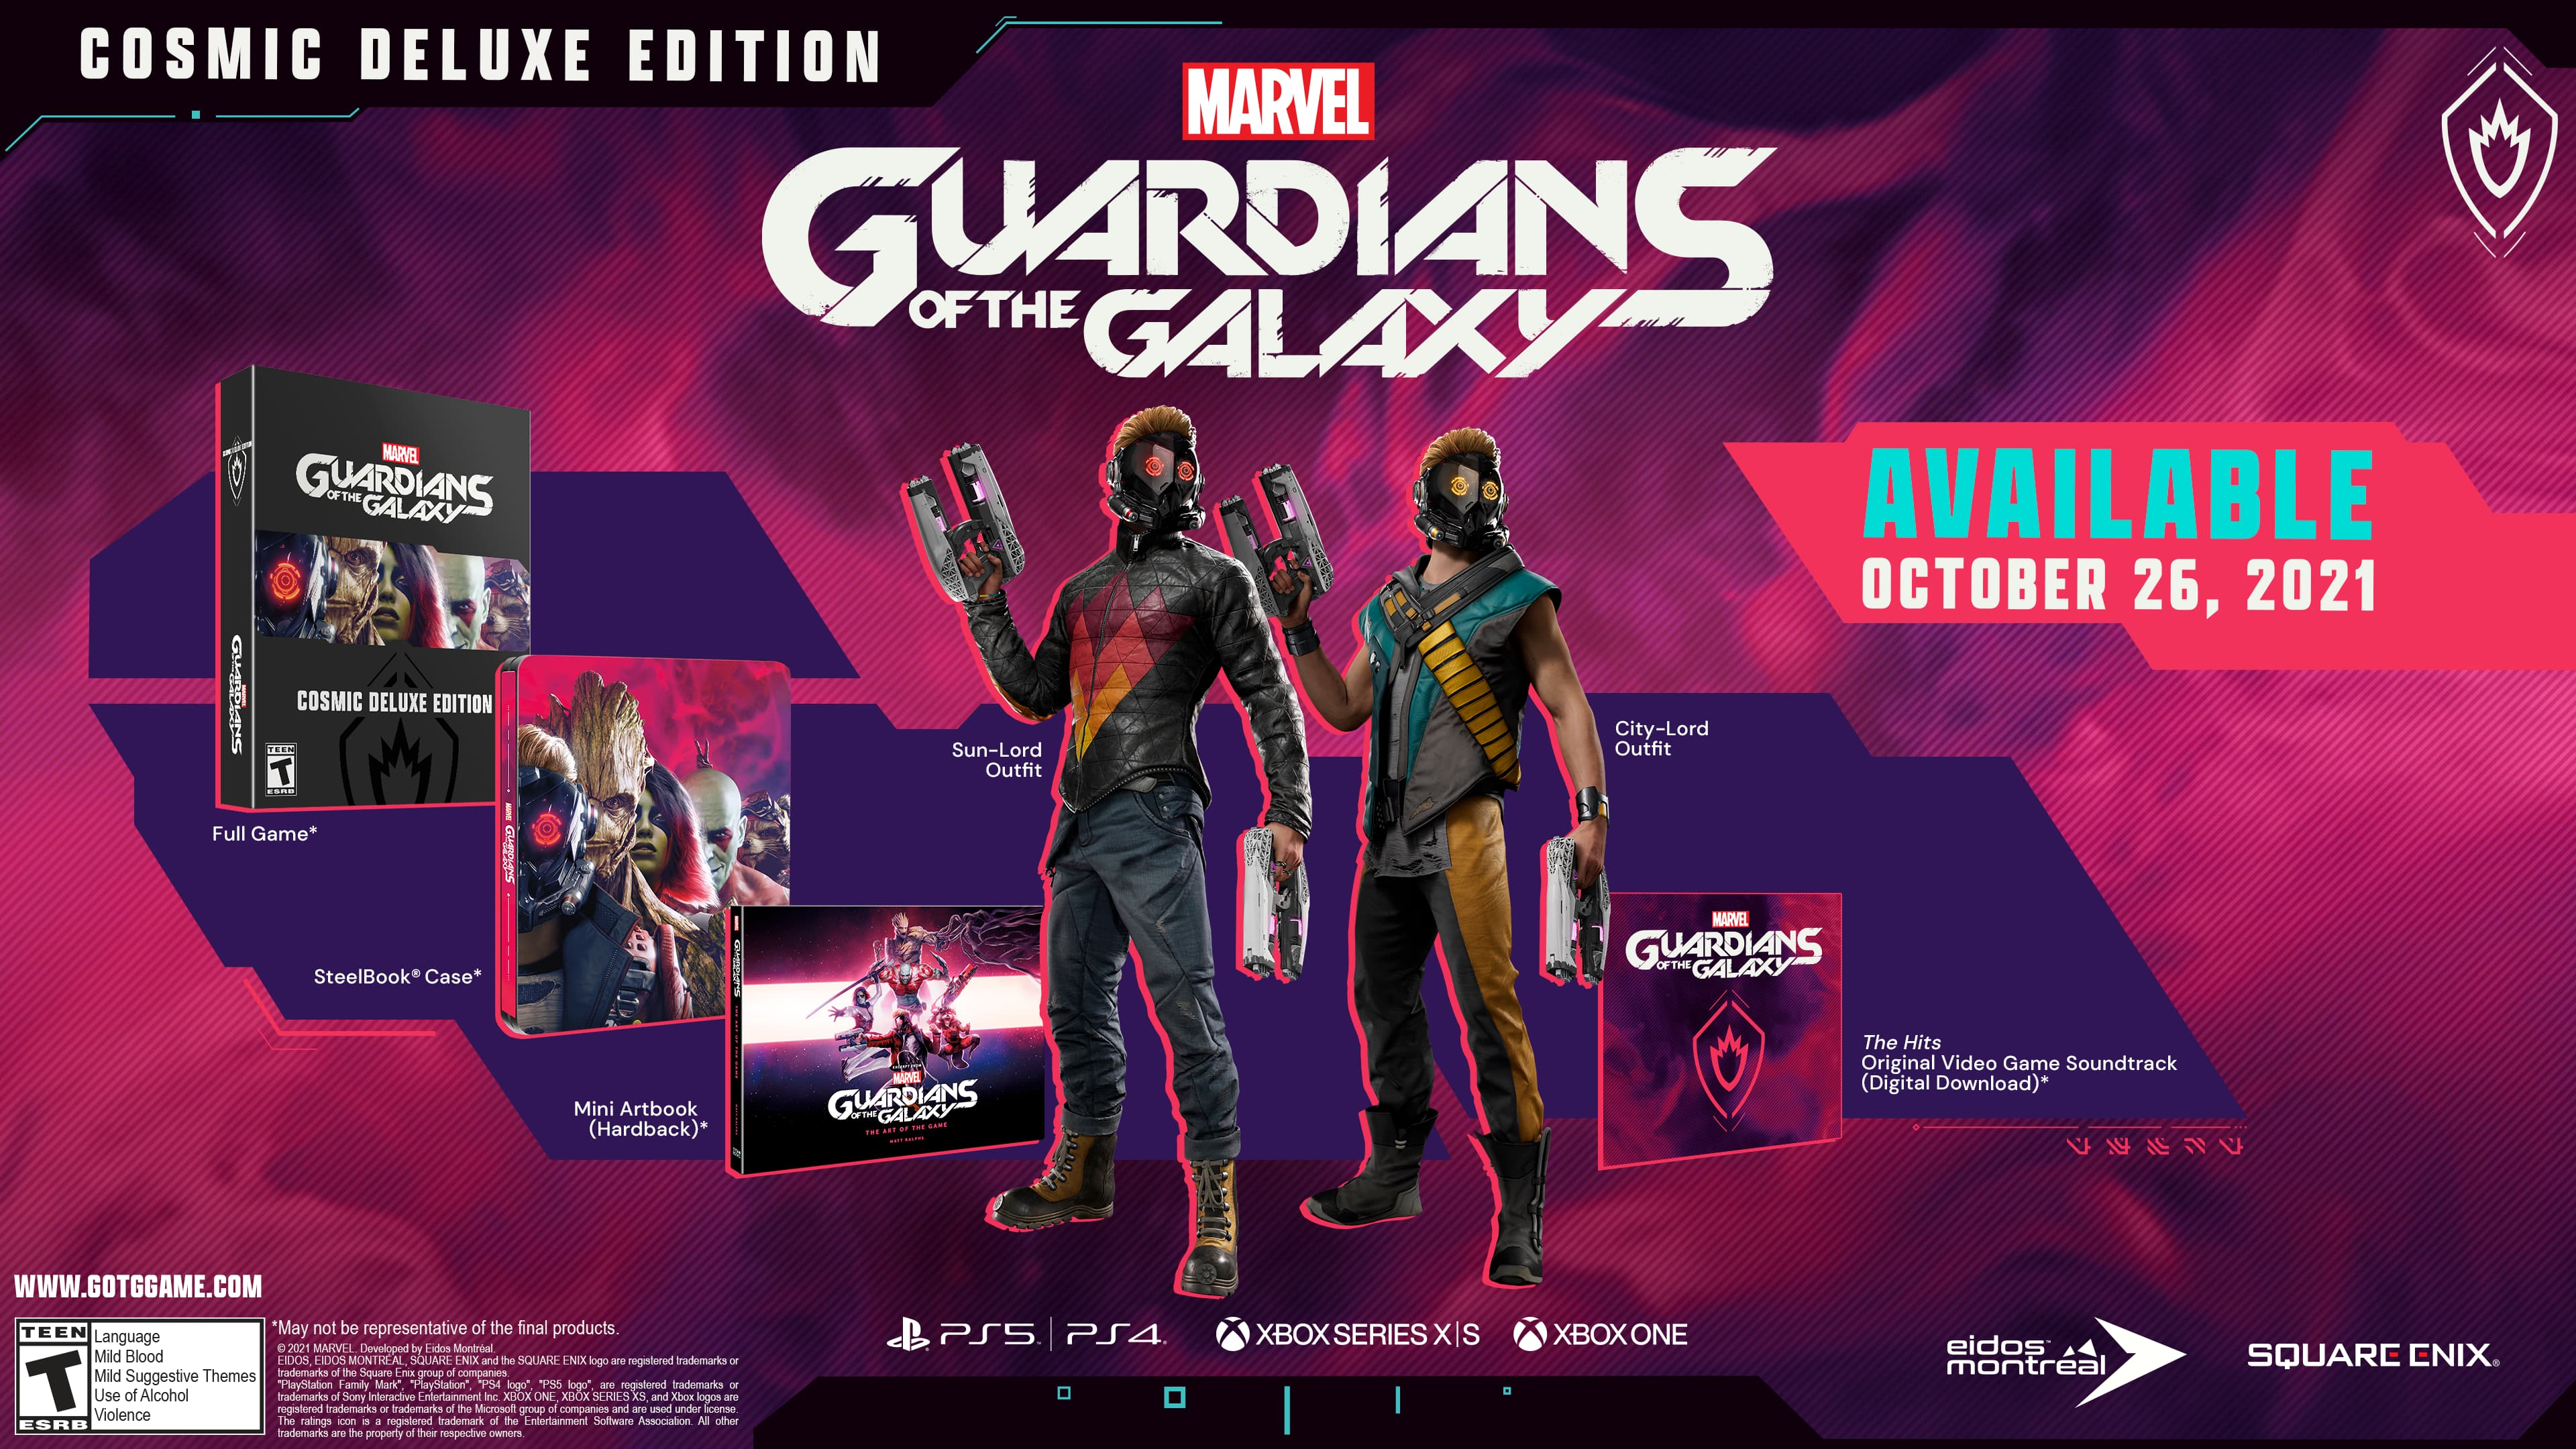 Contents of the Cosmic Deluxe edition of Marvel's Guardians of the Galaxy